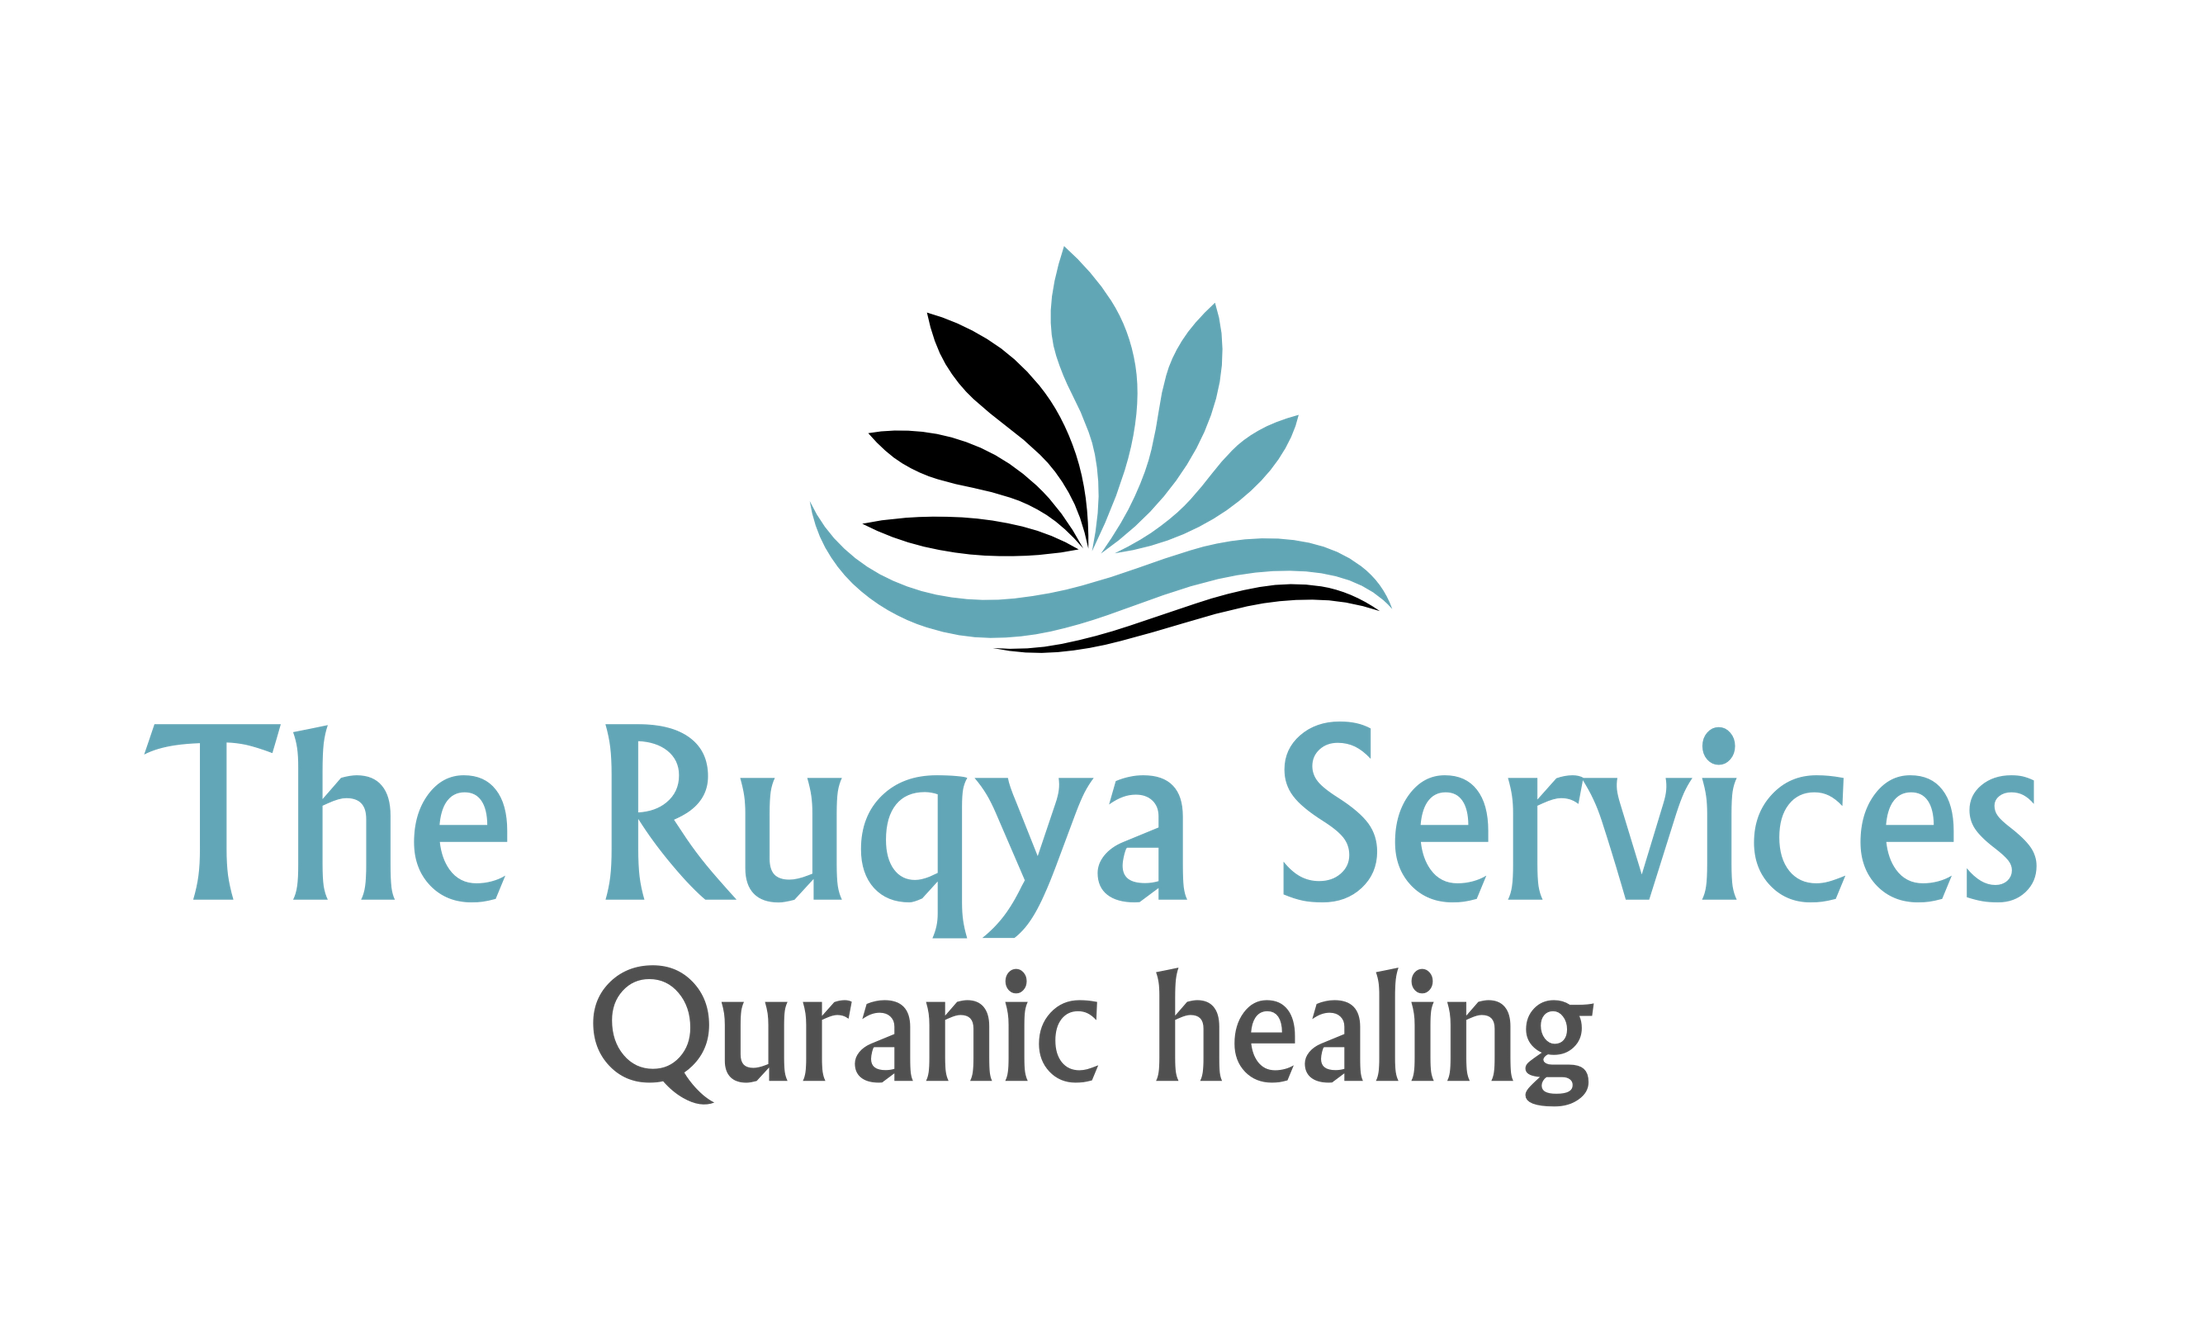 OUR COST | The Ruqya Services